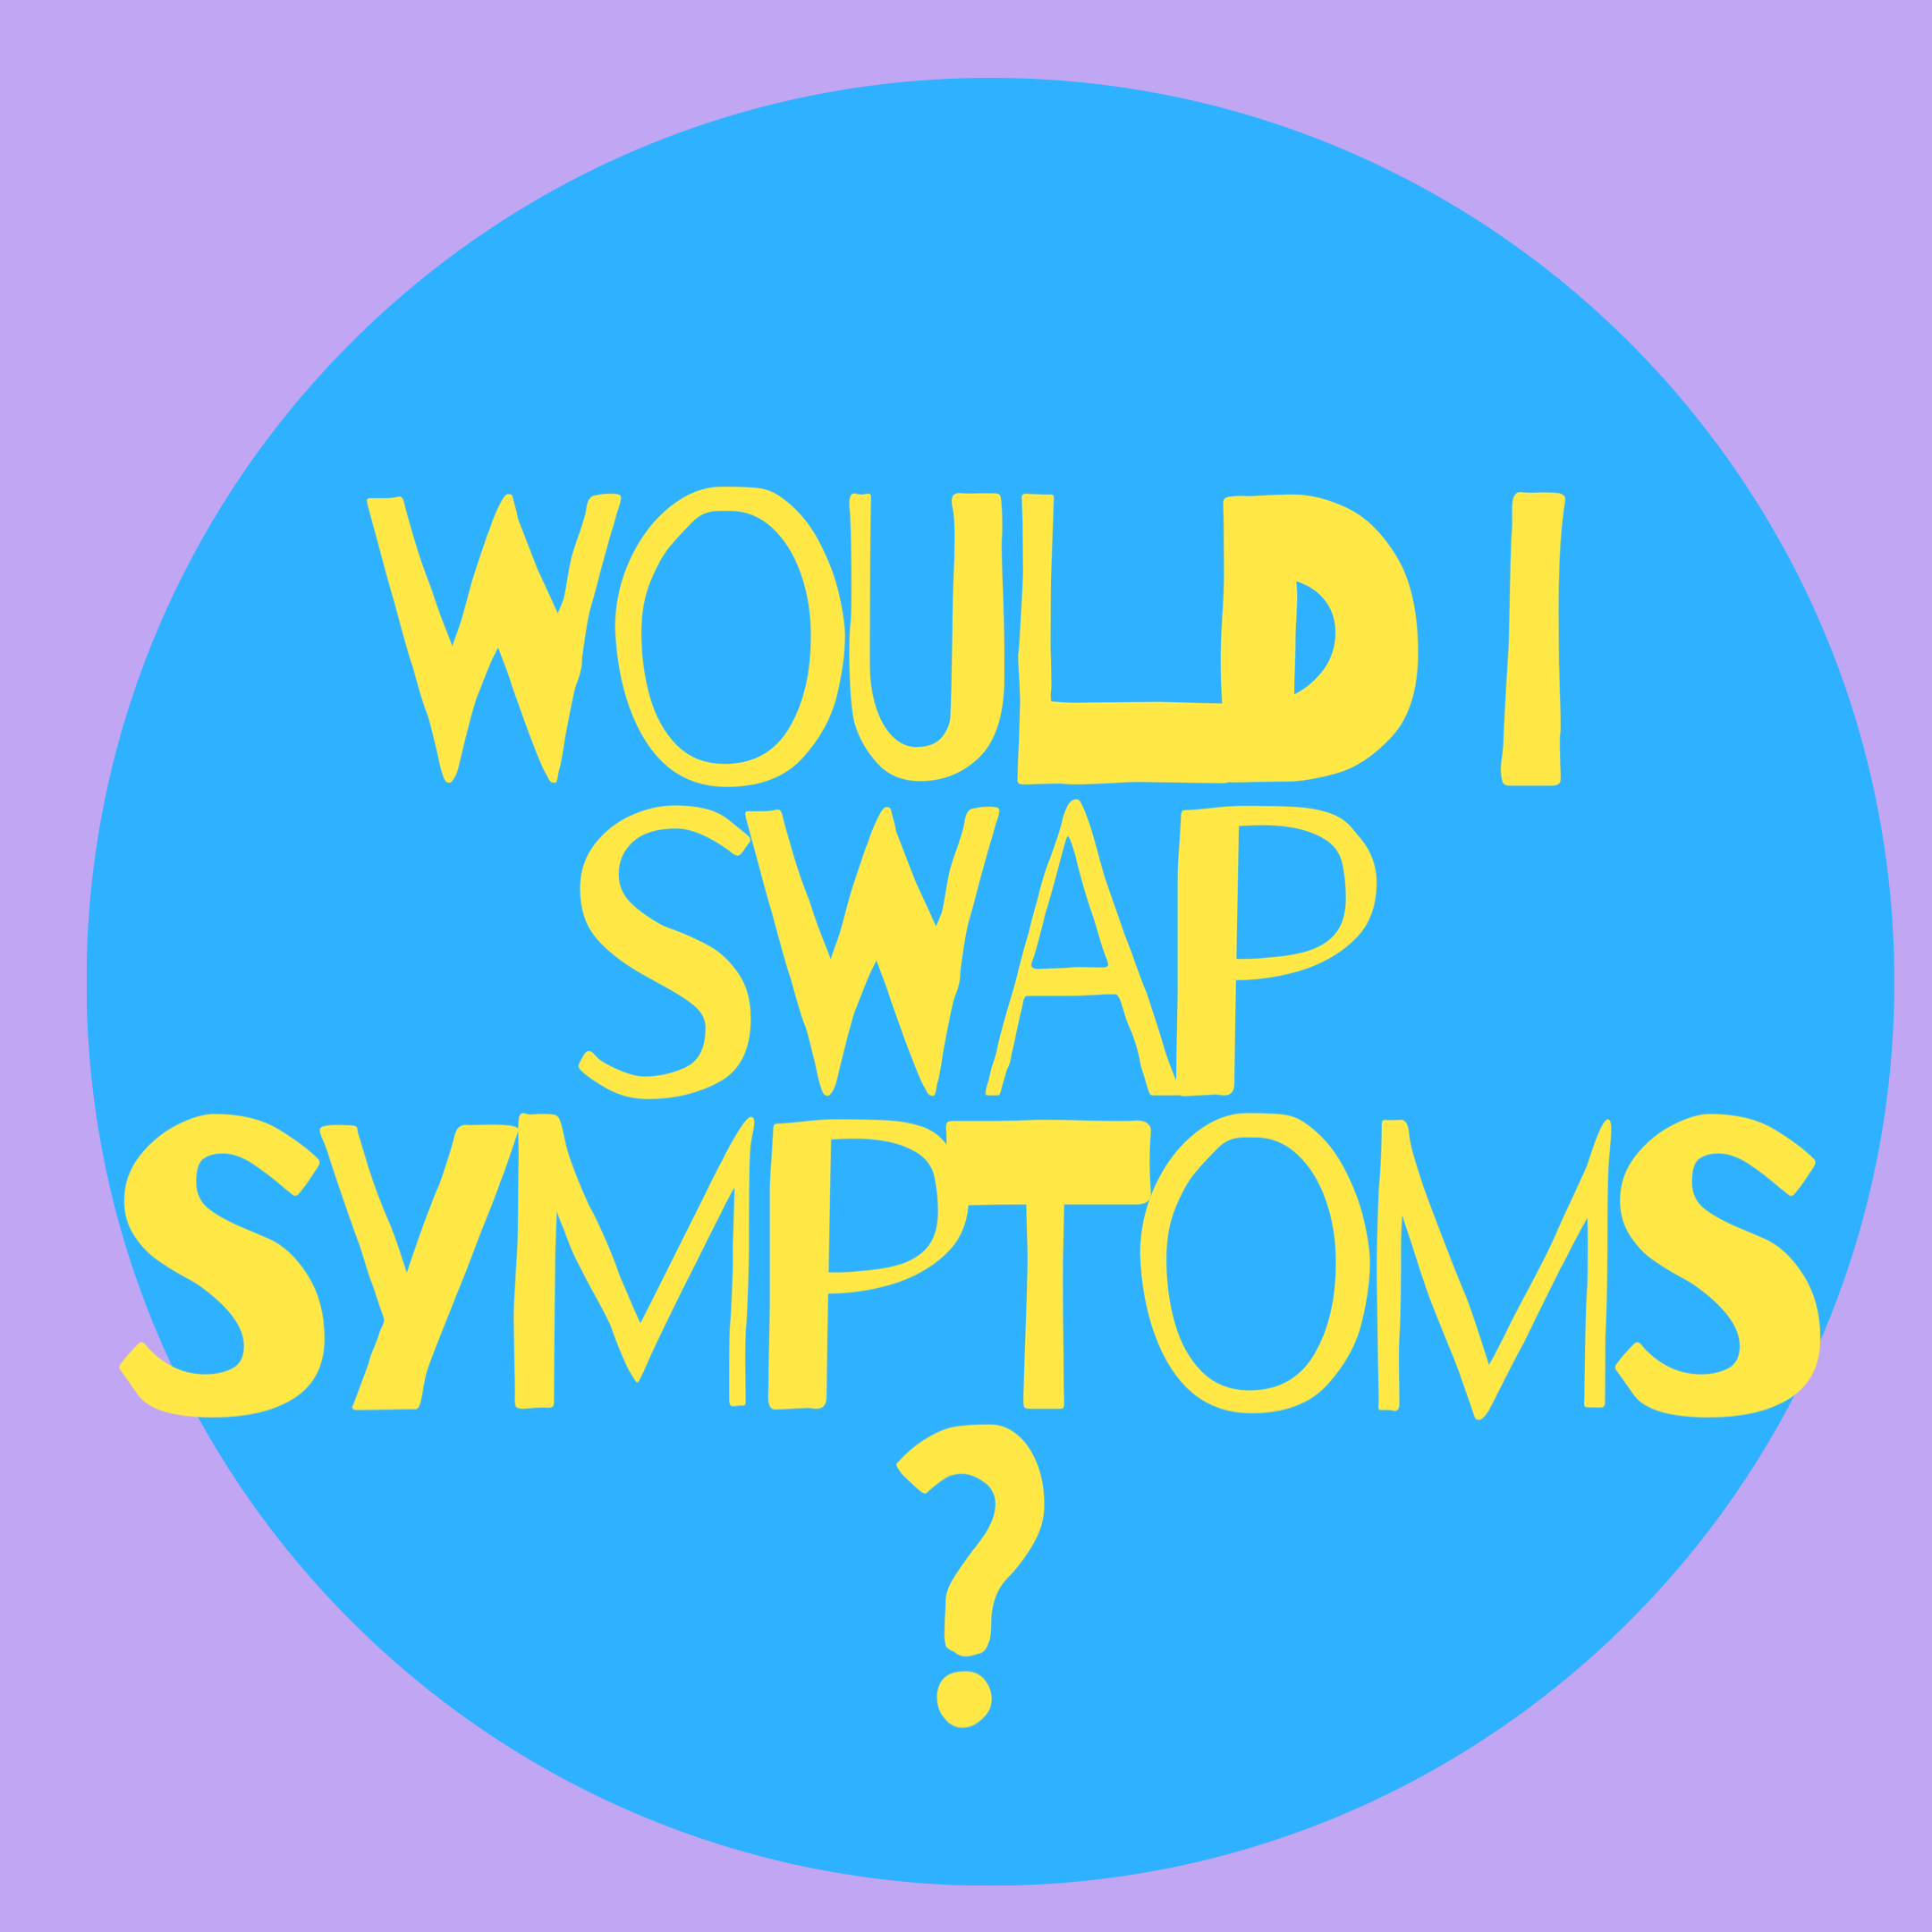 yellow would i swap symptoms in ble circle over lavender background